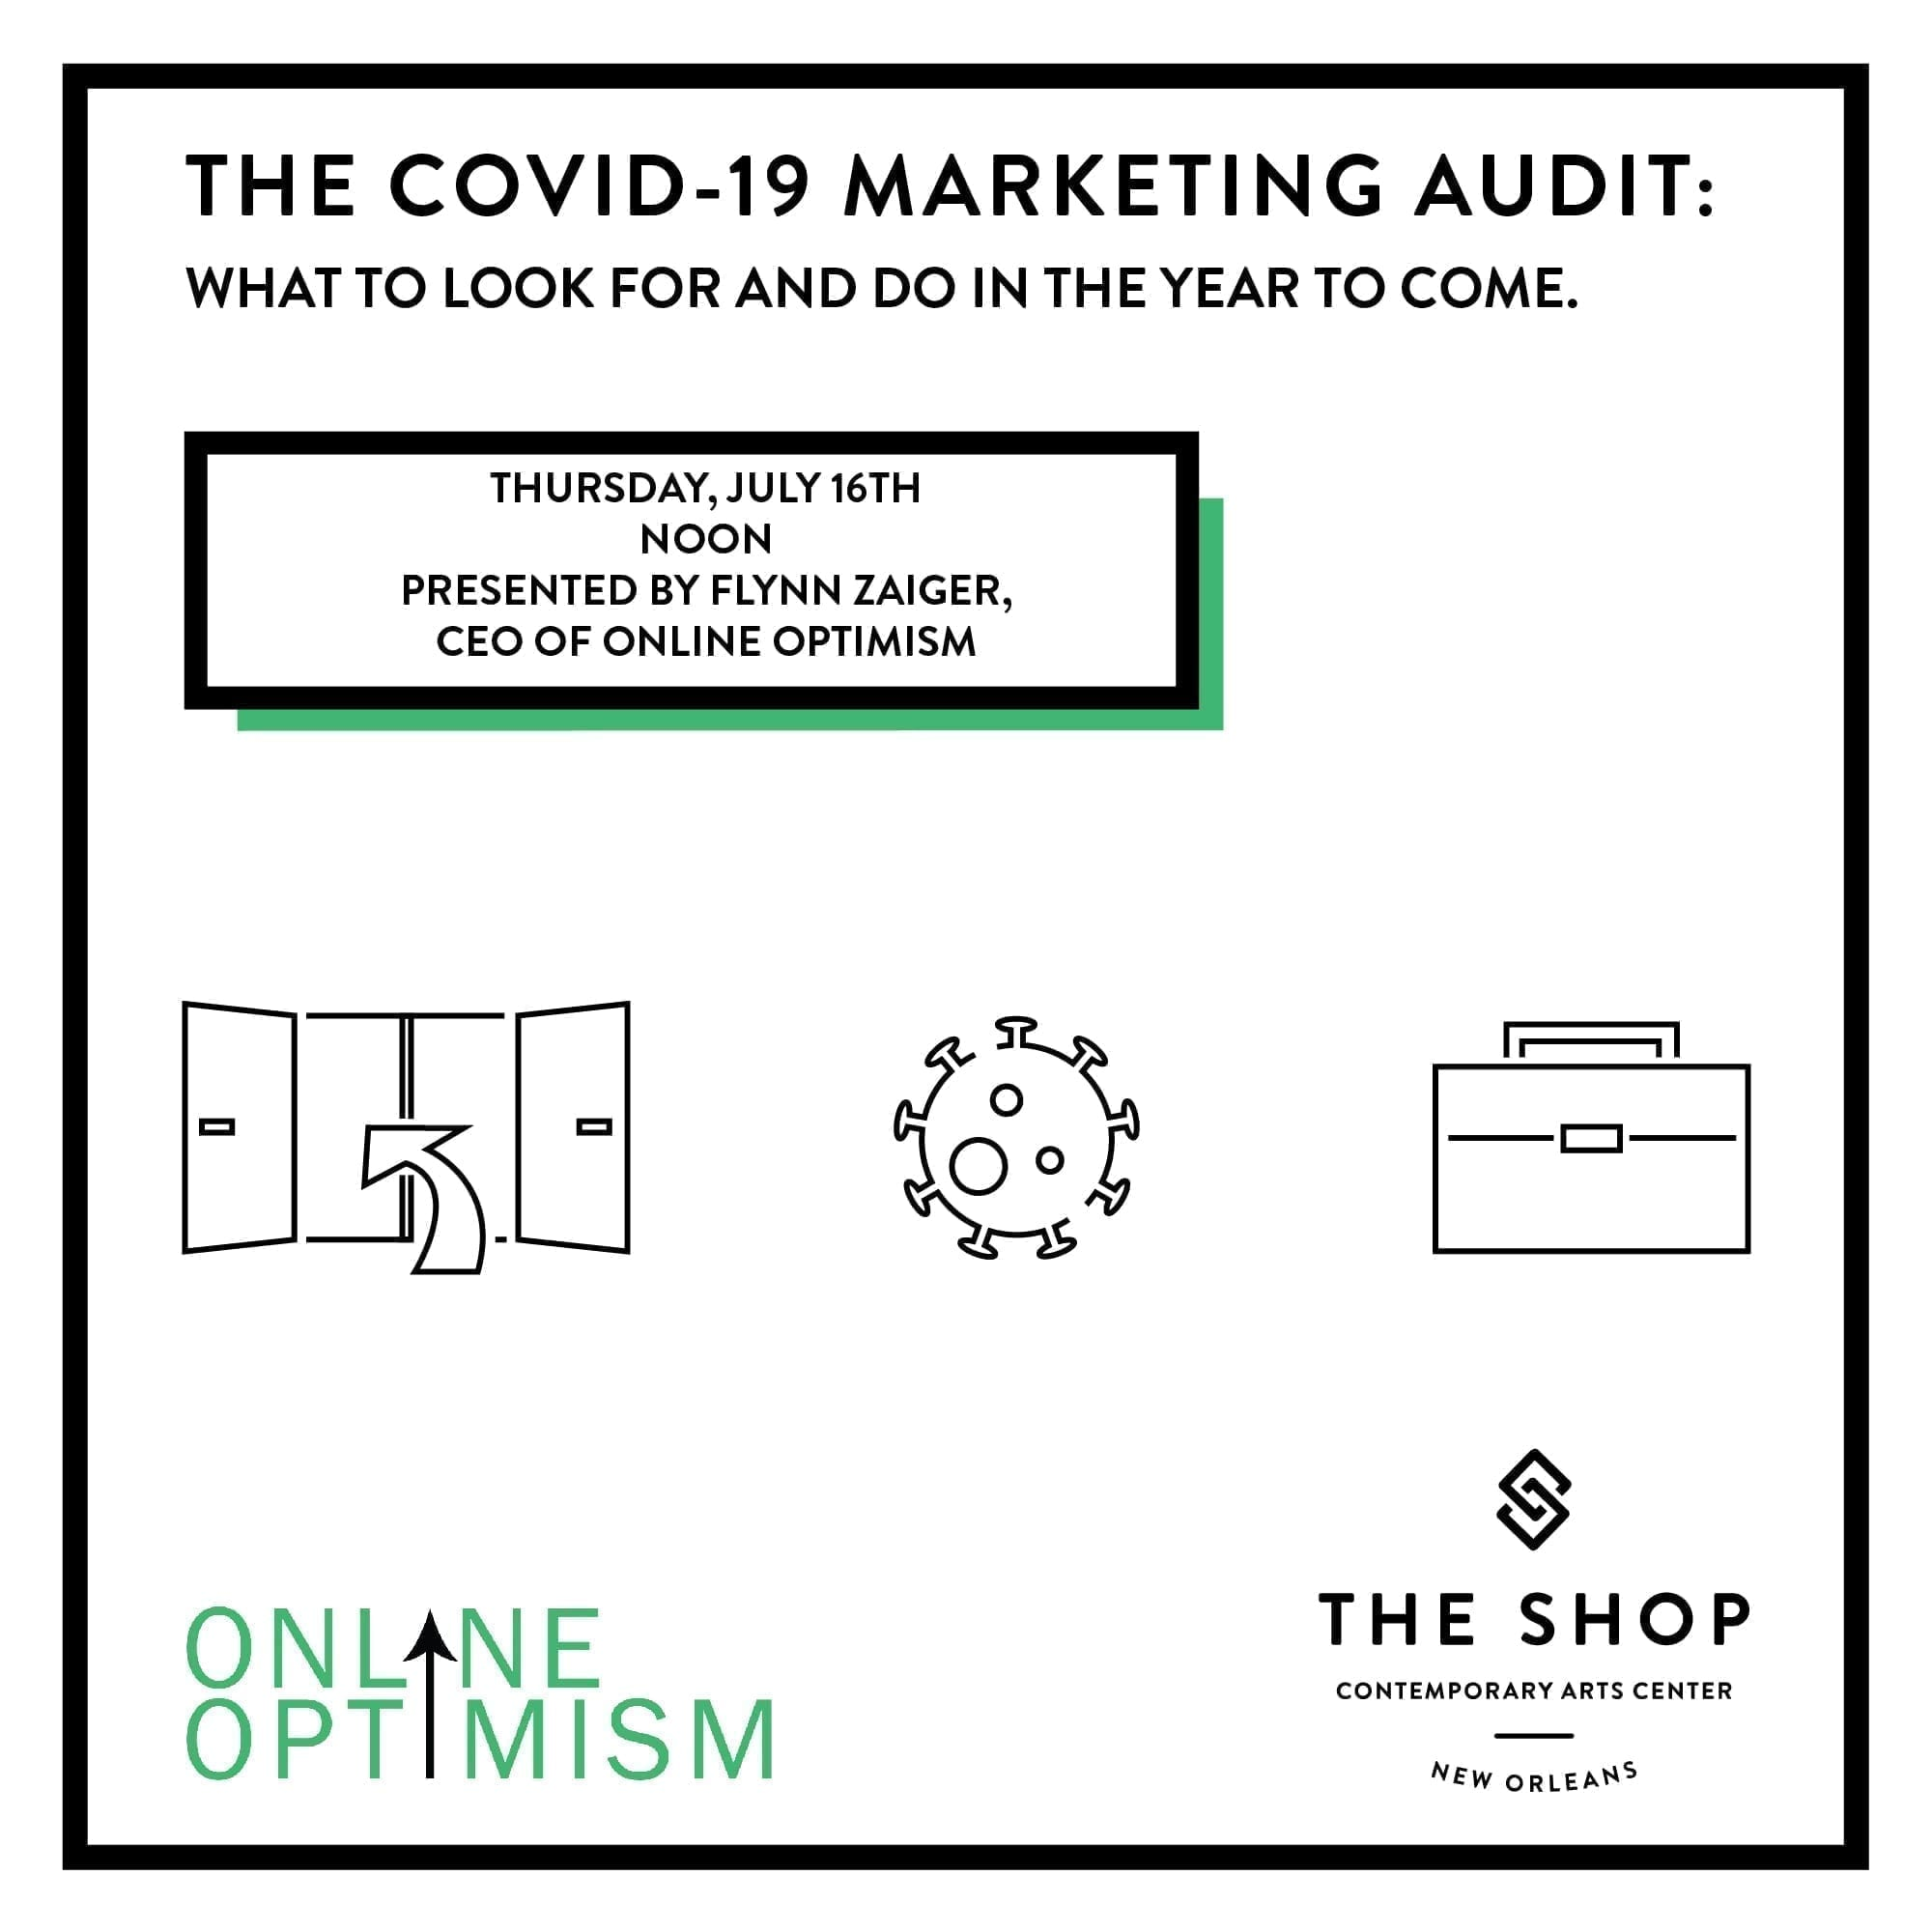 COVID 19 Marketing Audit Graphic Showing Open Doors